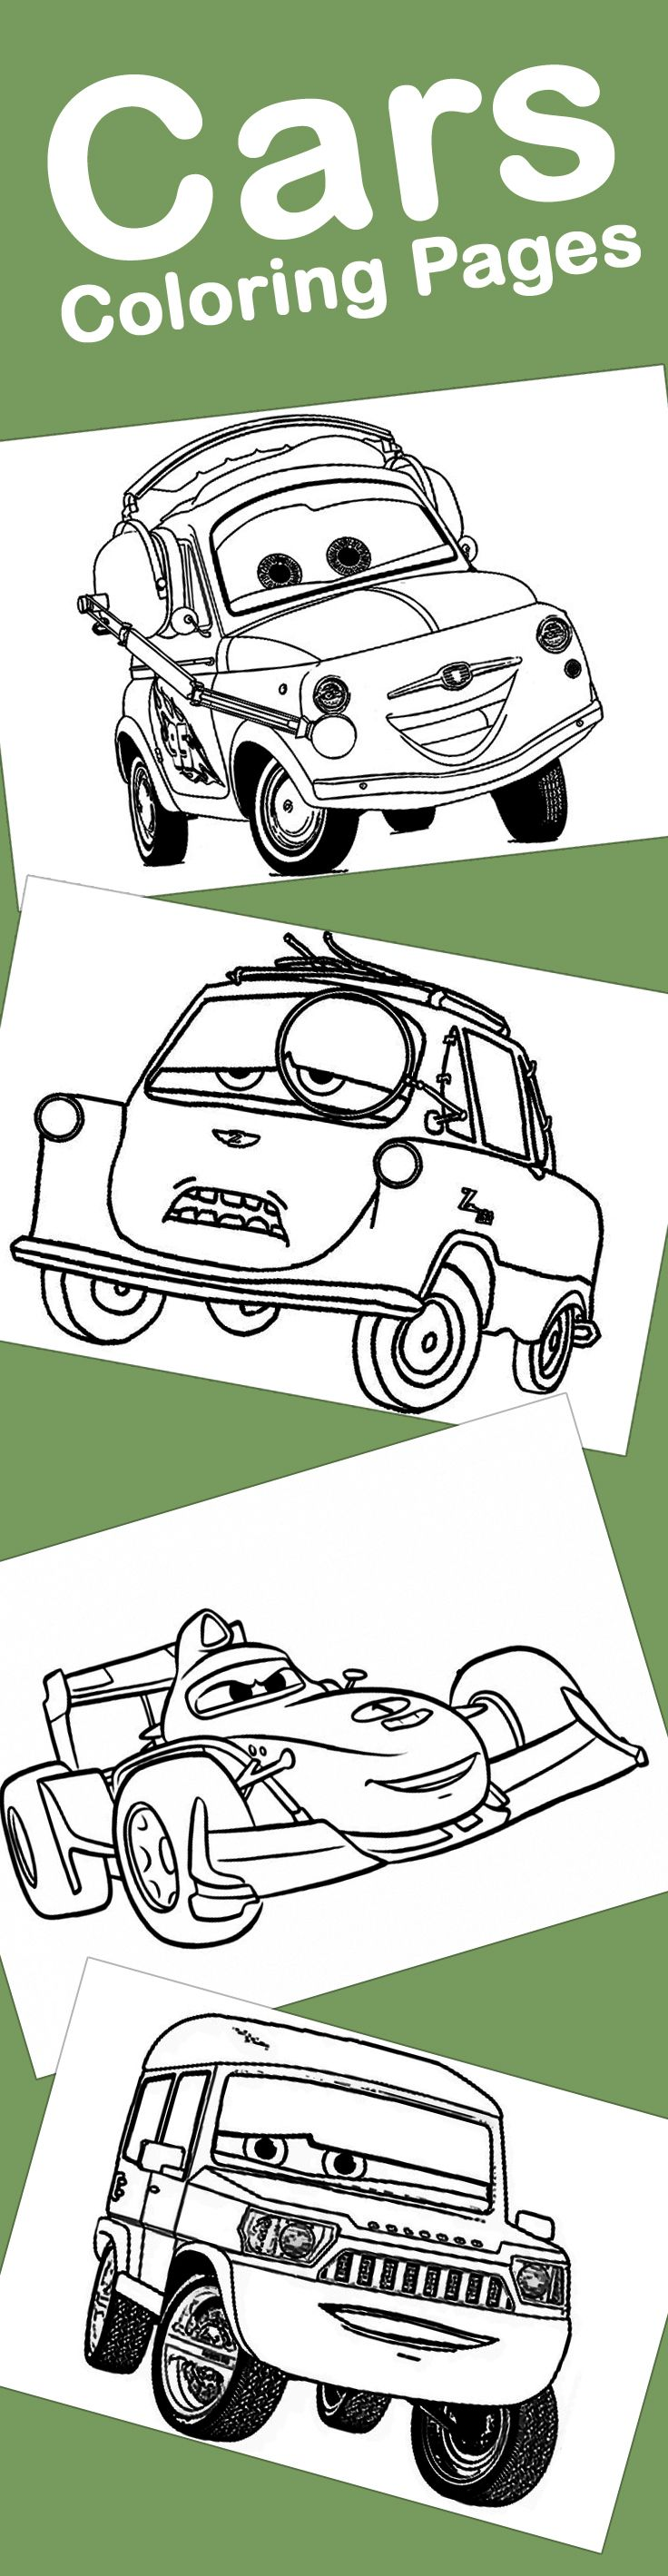 Top 10 Colorful Cars Coloring Pages For Your Little One: Here's where you can make a collection of coloring pages of cars 2 movie, the following are the top 10 car coloring pages printable.